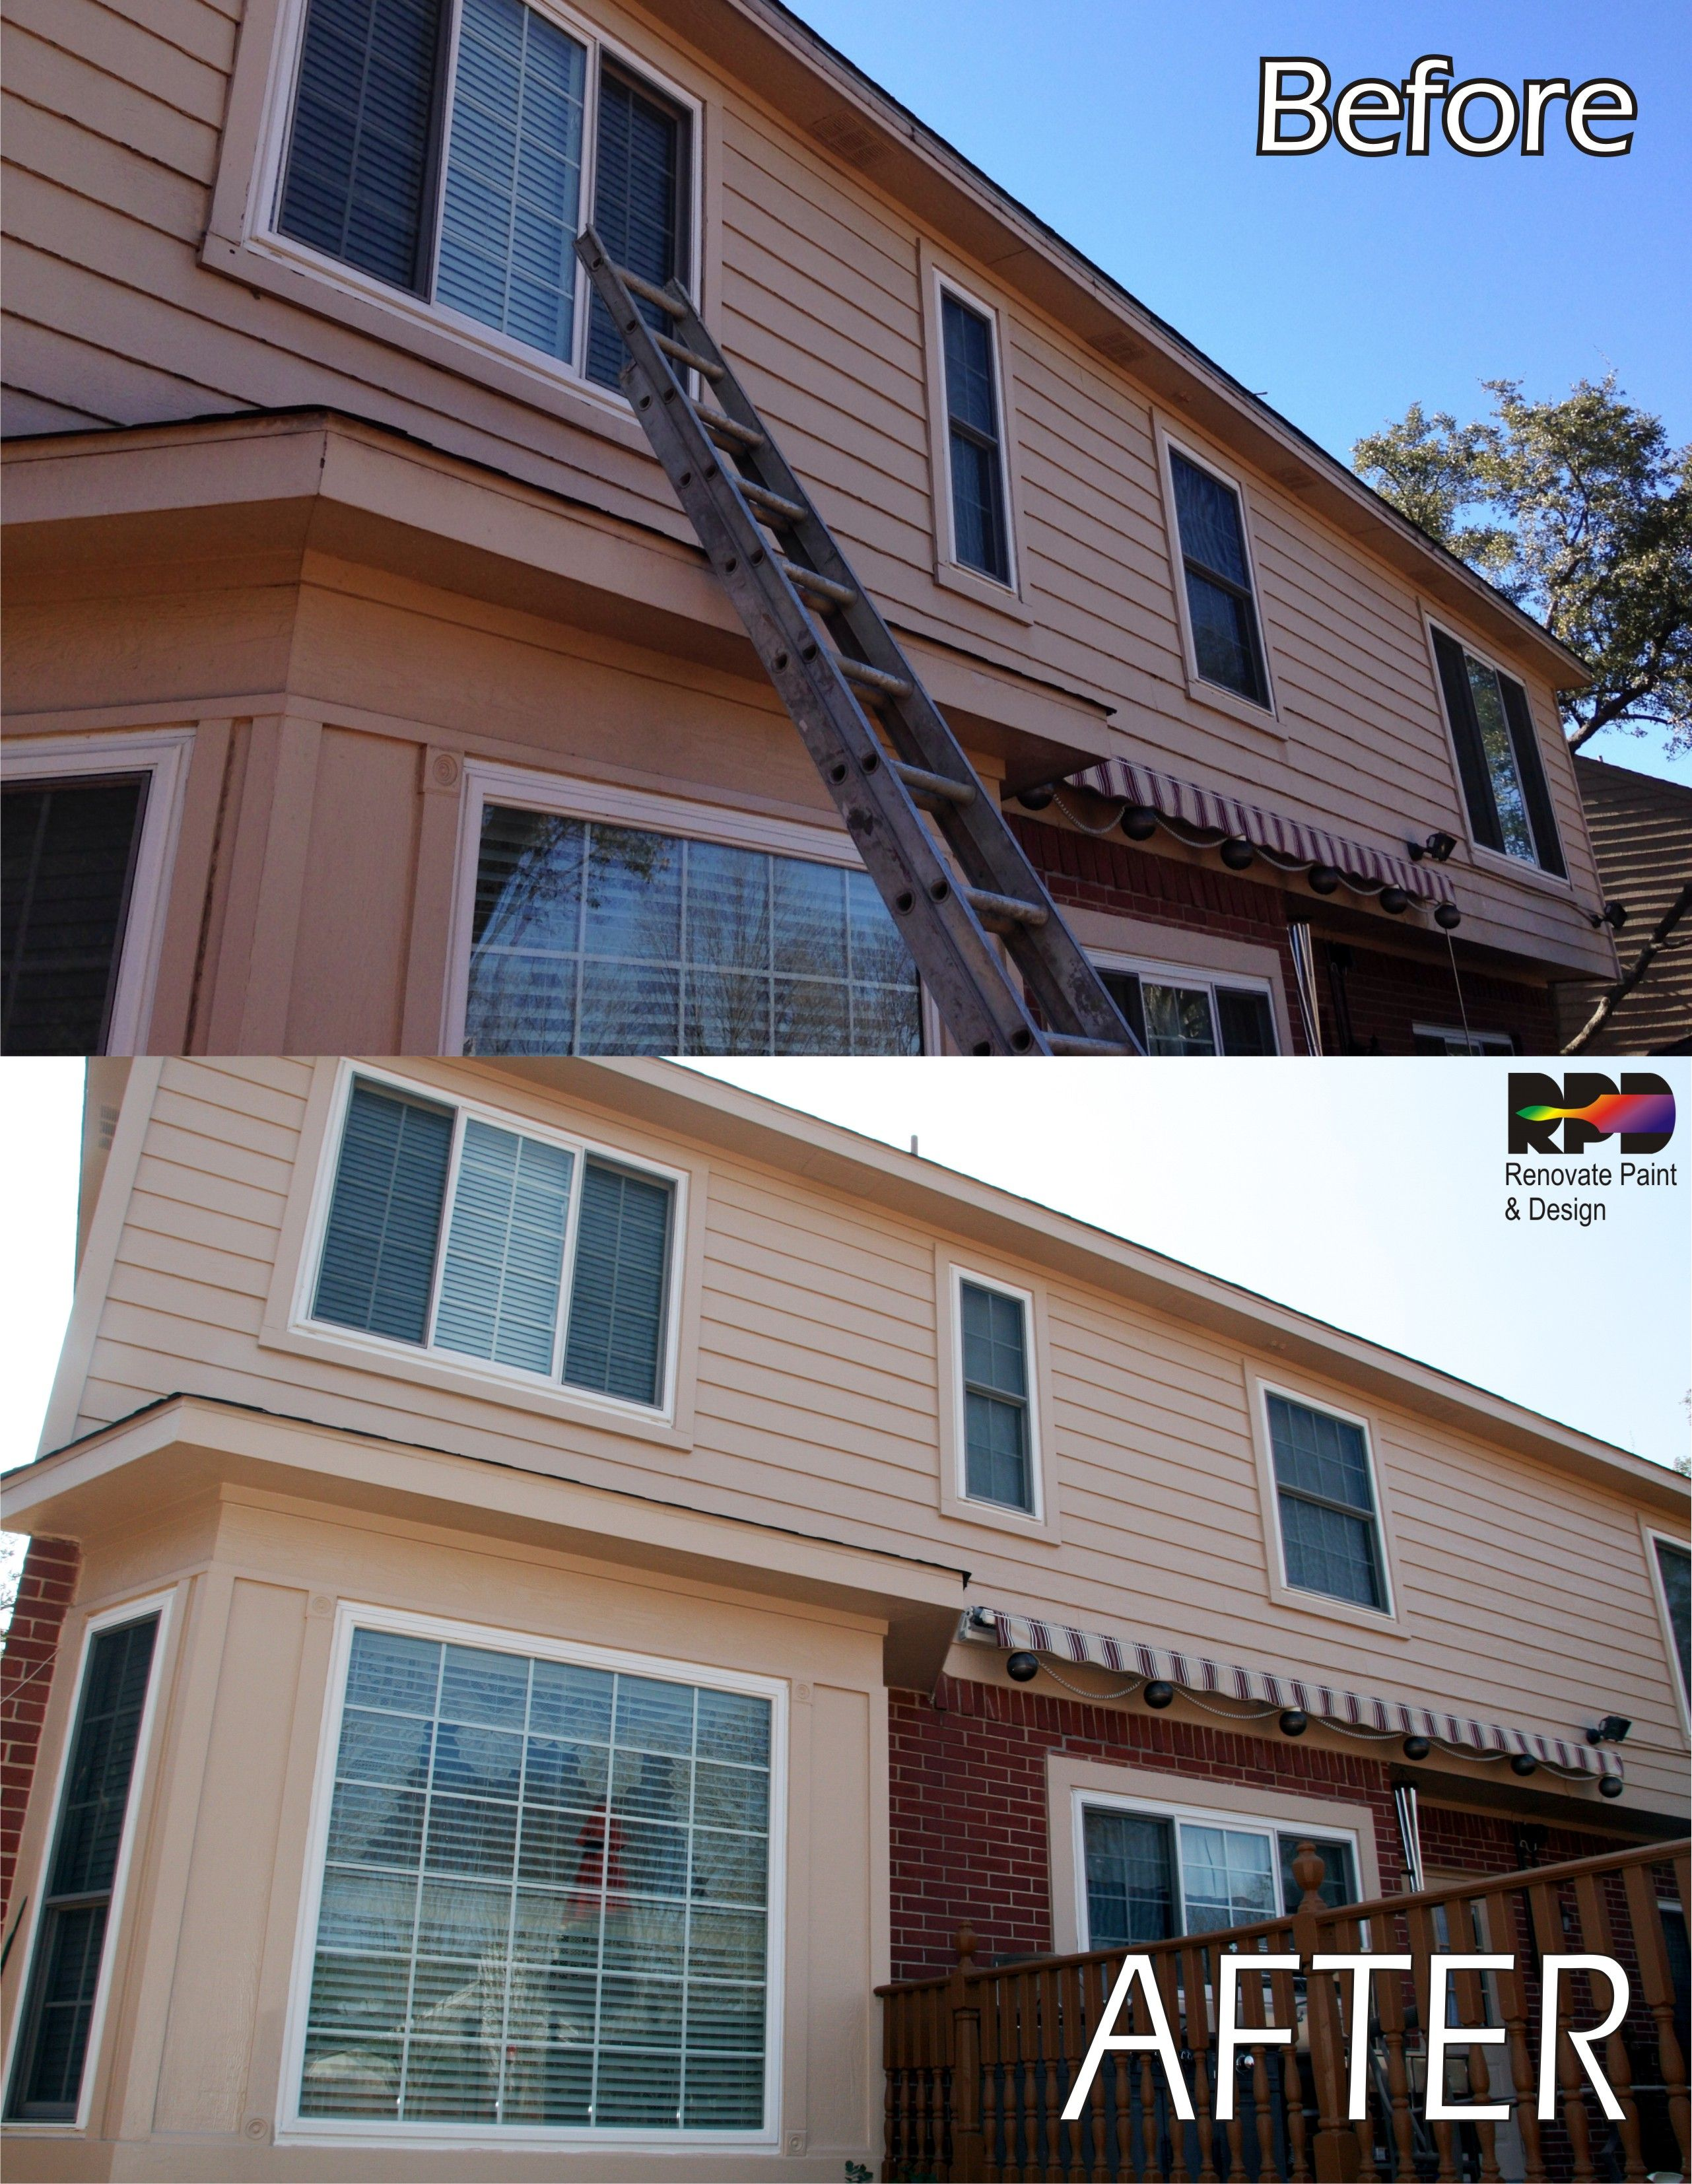 Siding Repairs Wood Repairs And A Fresh Coat Of New Paint Color Enhanced And Brought This Home Back To Its Beauty Siding Repair New Paint Colors Wood Repair